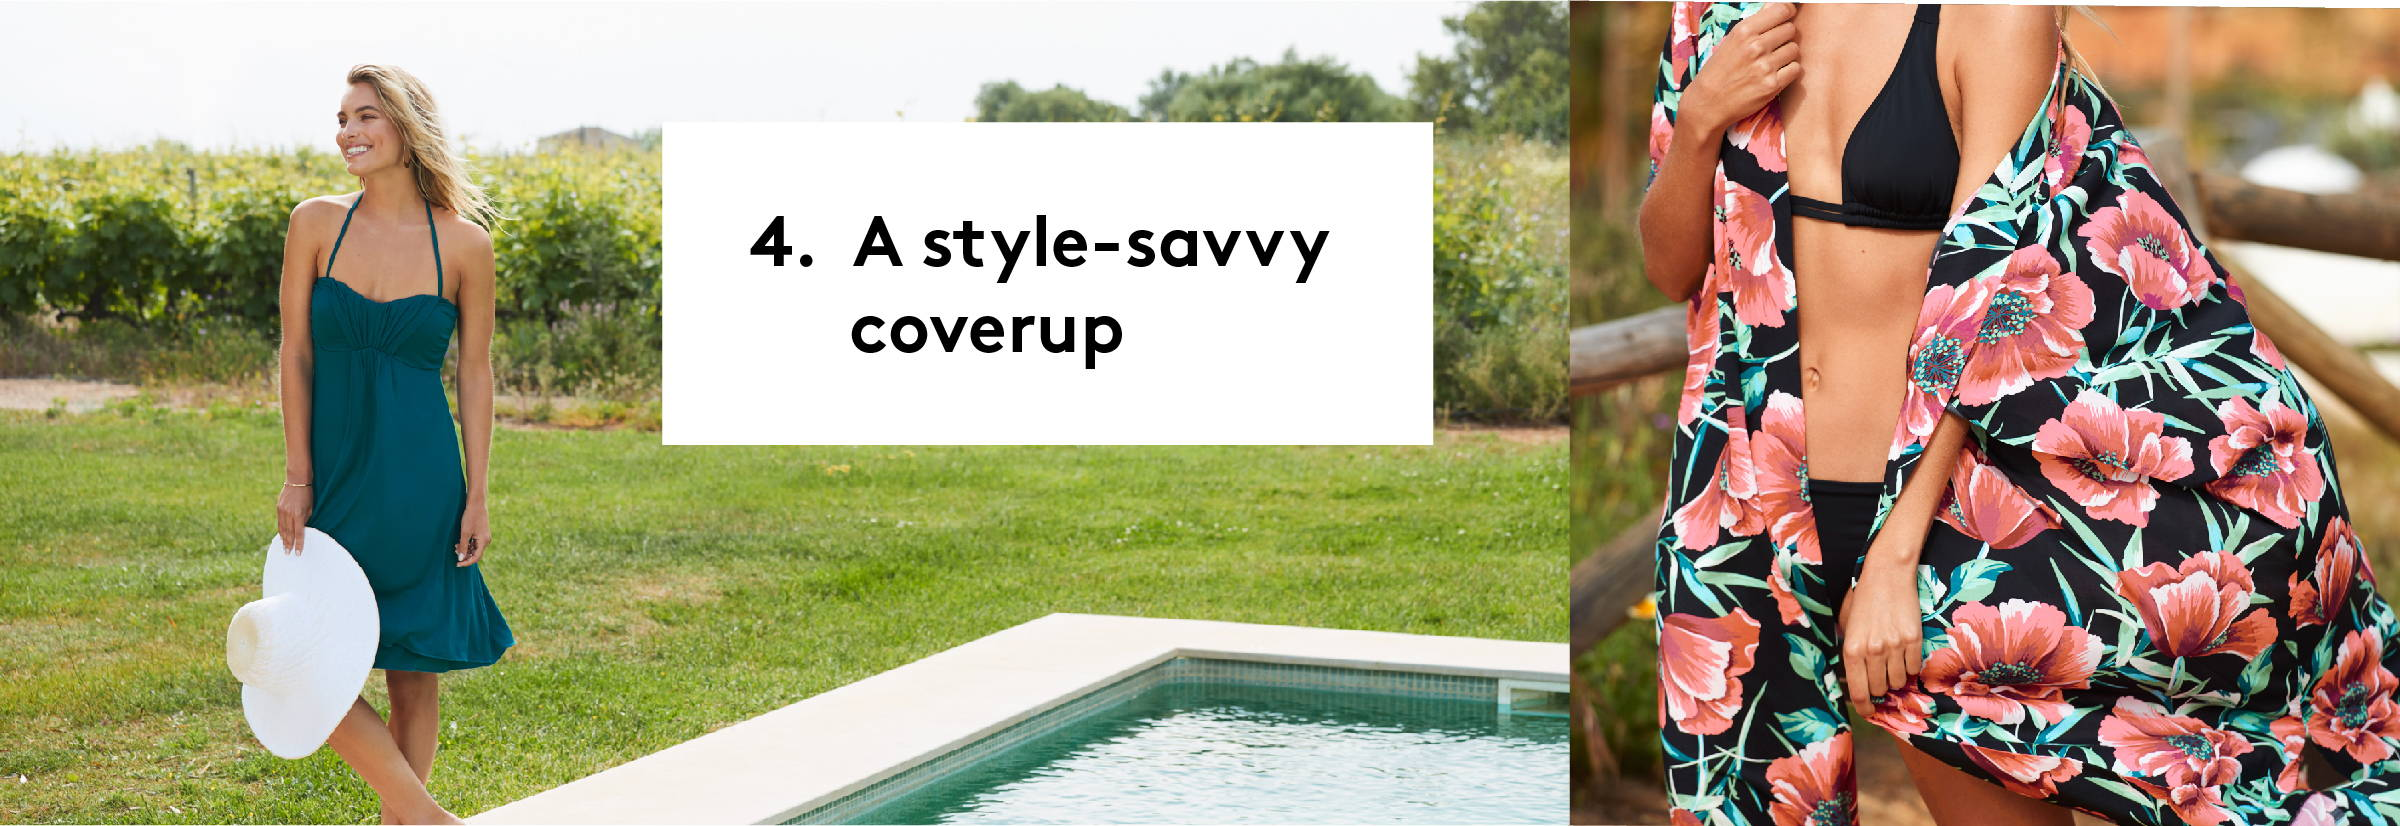 Get a STYLE-SAVVY COVERUP from SKYE!